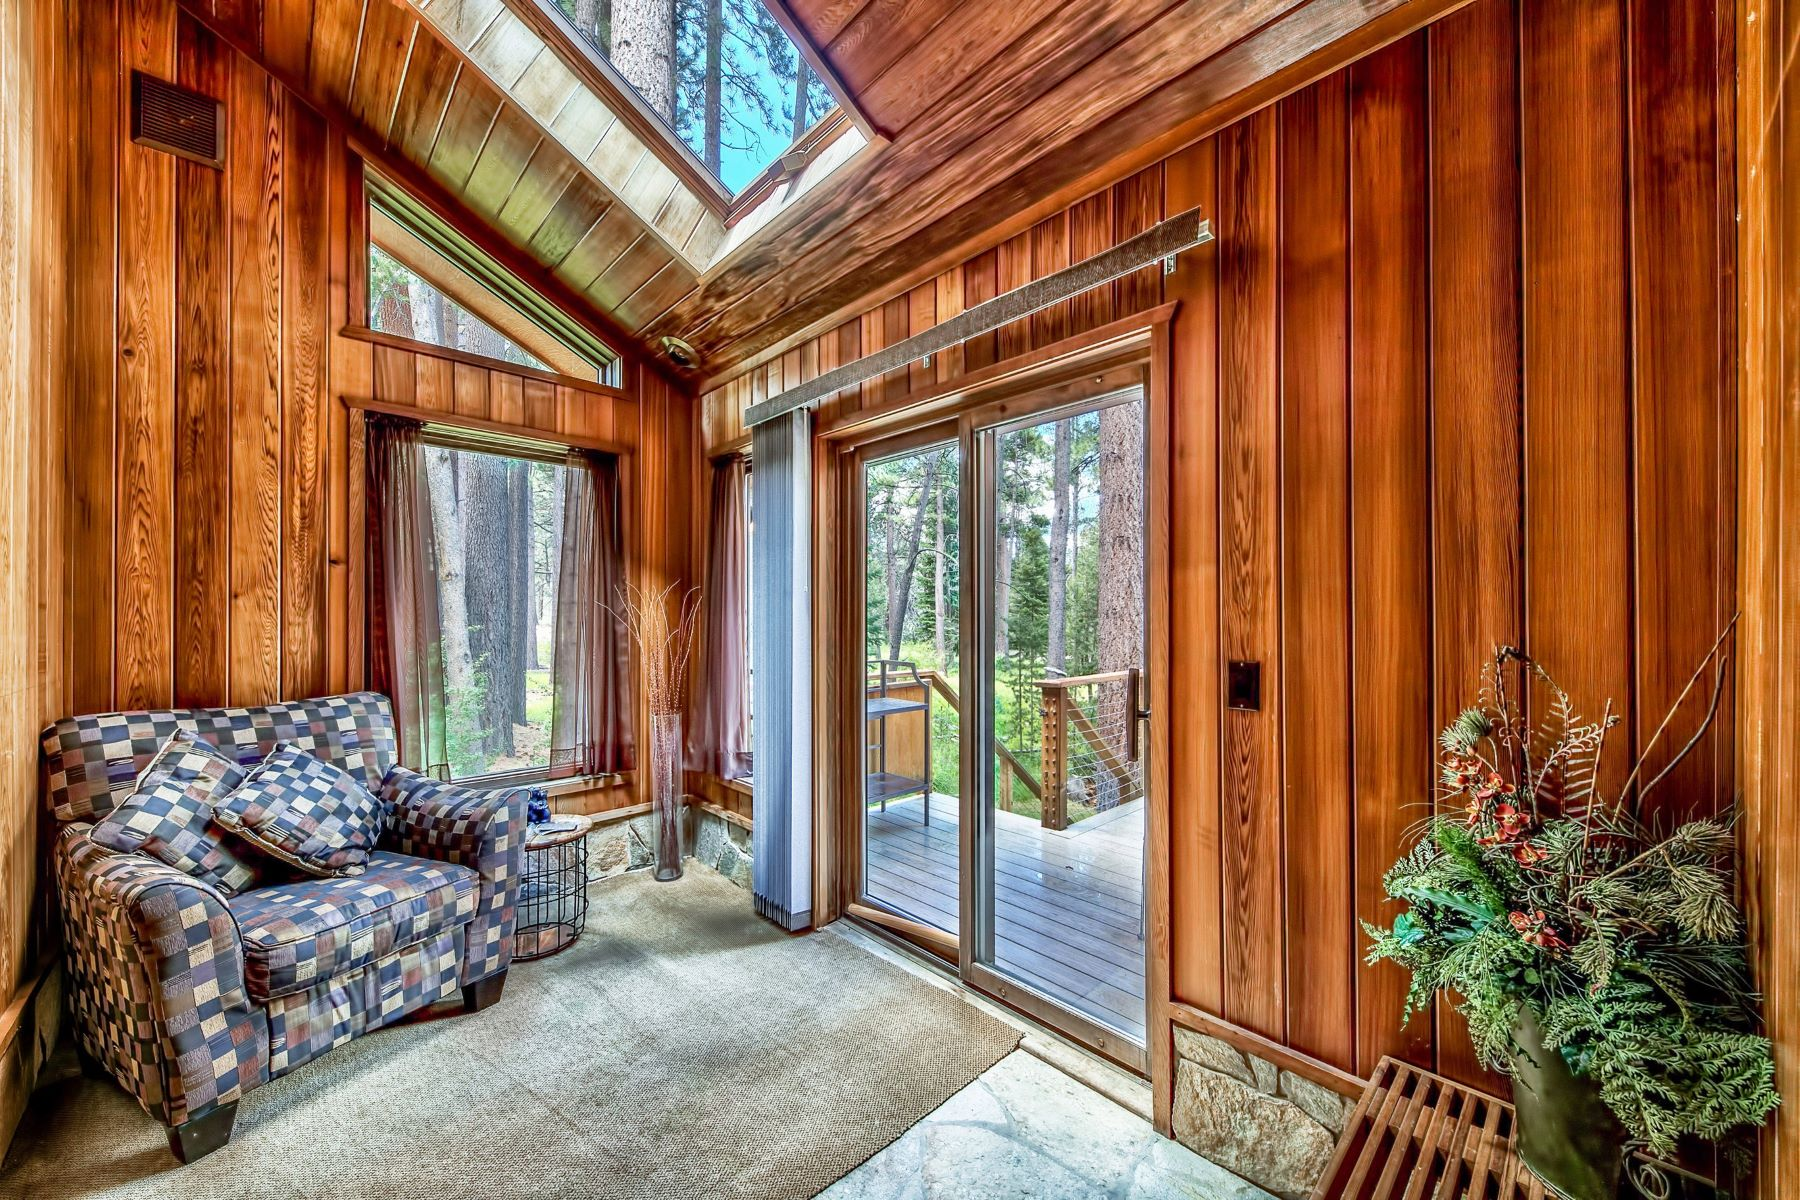 Additional photo for property listing at 952 Silverwood Circle, South Lake Tahoe, CA 96150 952 Silverwood Circle South Lake Tahoe, California 96150 United States